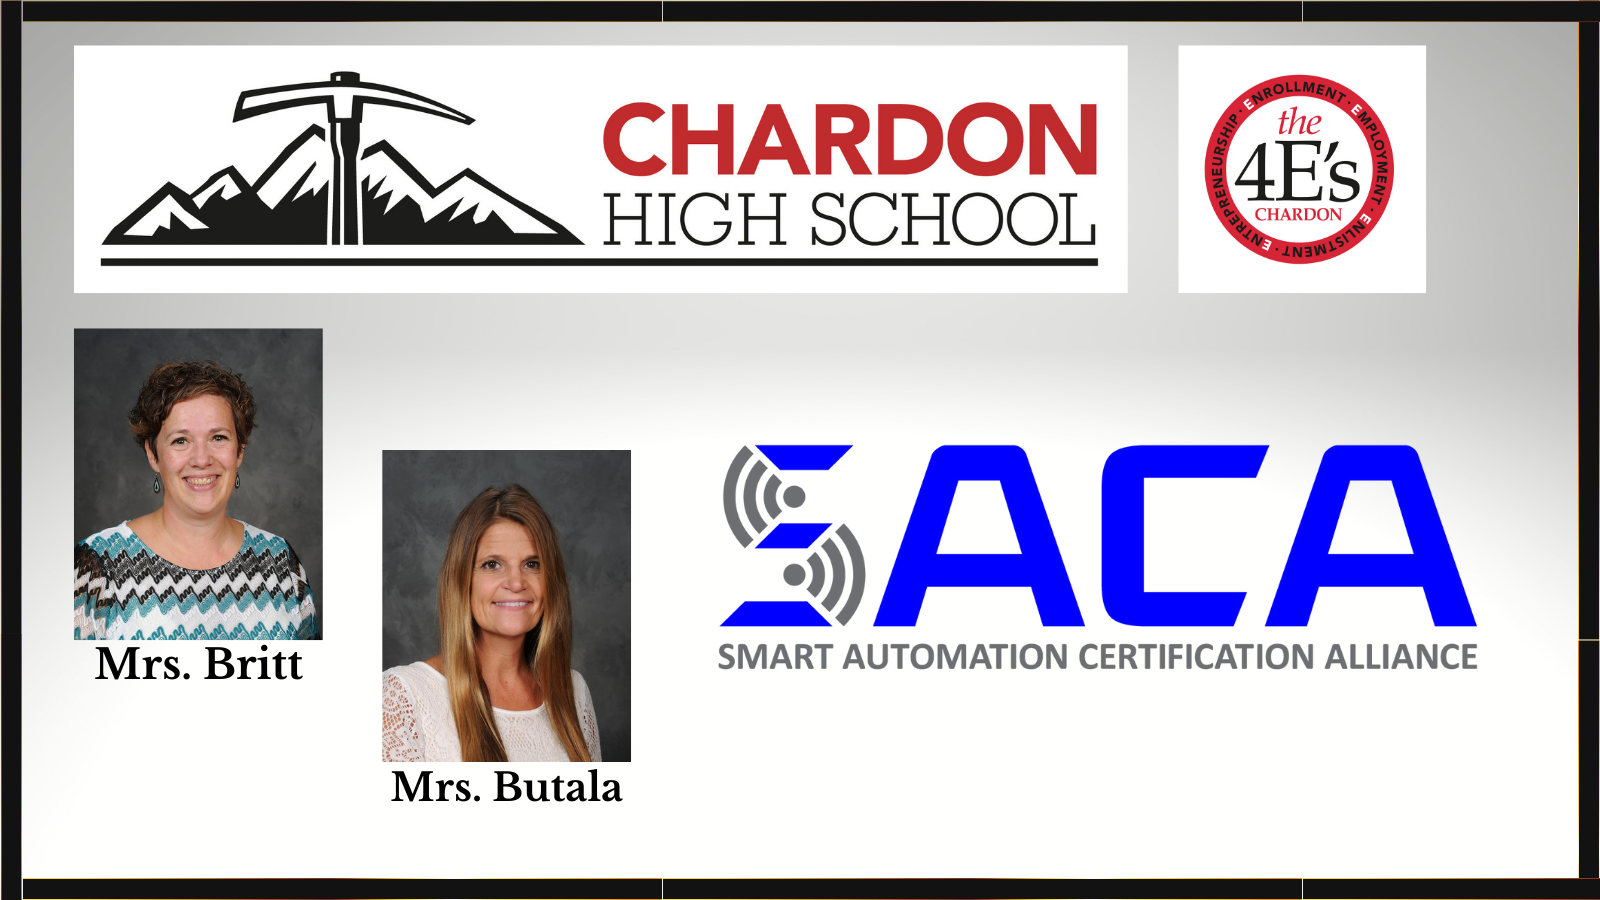 graphic collage featuring white/grey background with Chardon High School mountain axe logo (red, white, black); Smart Automation Certification Alliance (SACA) - blue and grey; staff photos of Mrs. Butala and Mrs. Britt; Chardon Schools 4E's logo:  Employment, Enrollment, Enlistment, Entrepreneurship